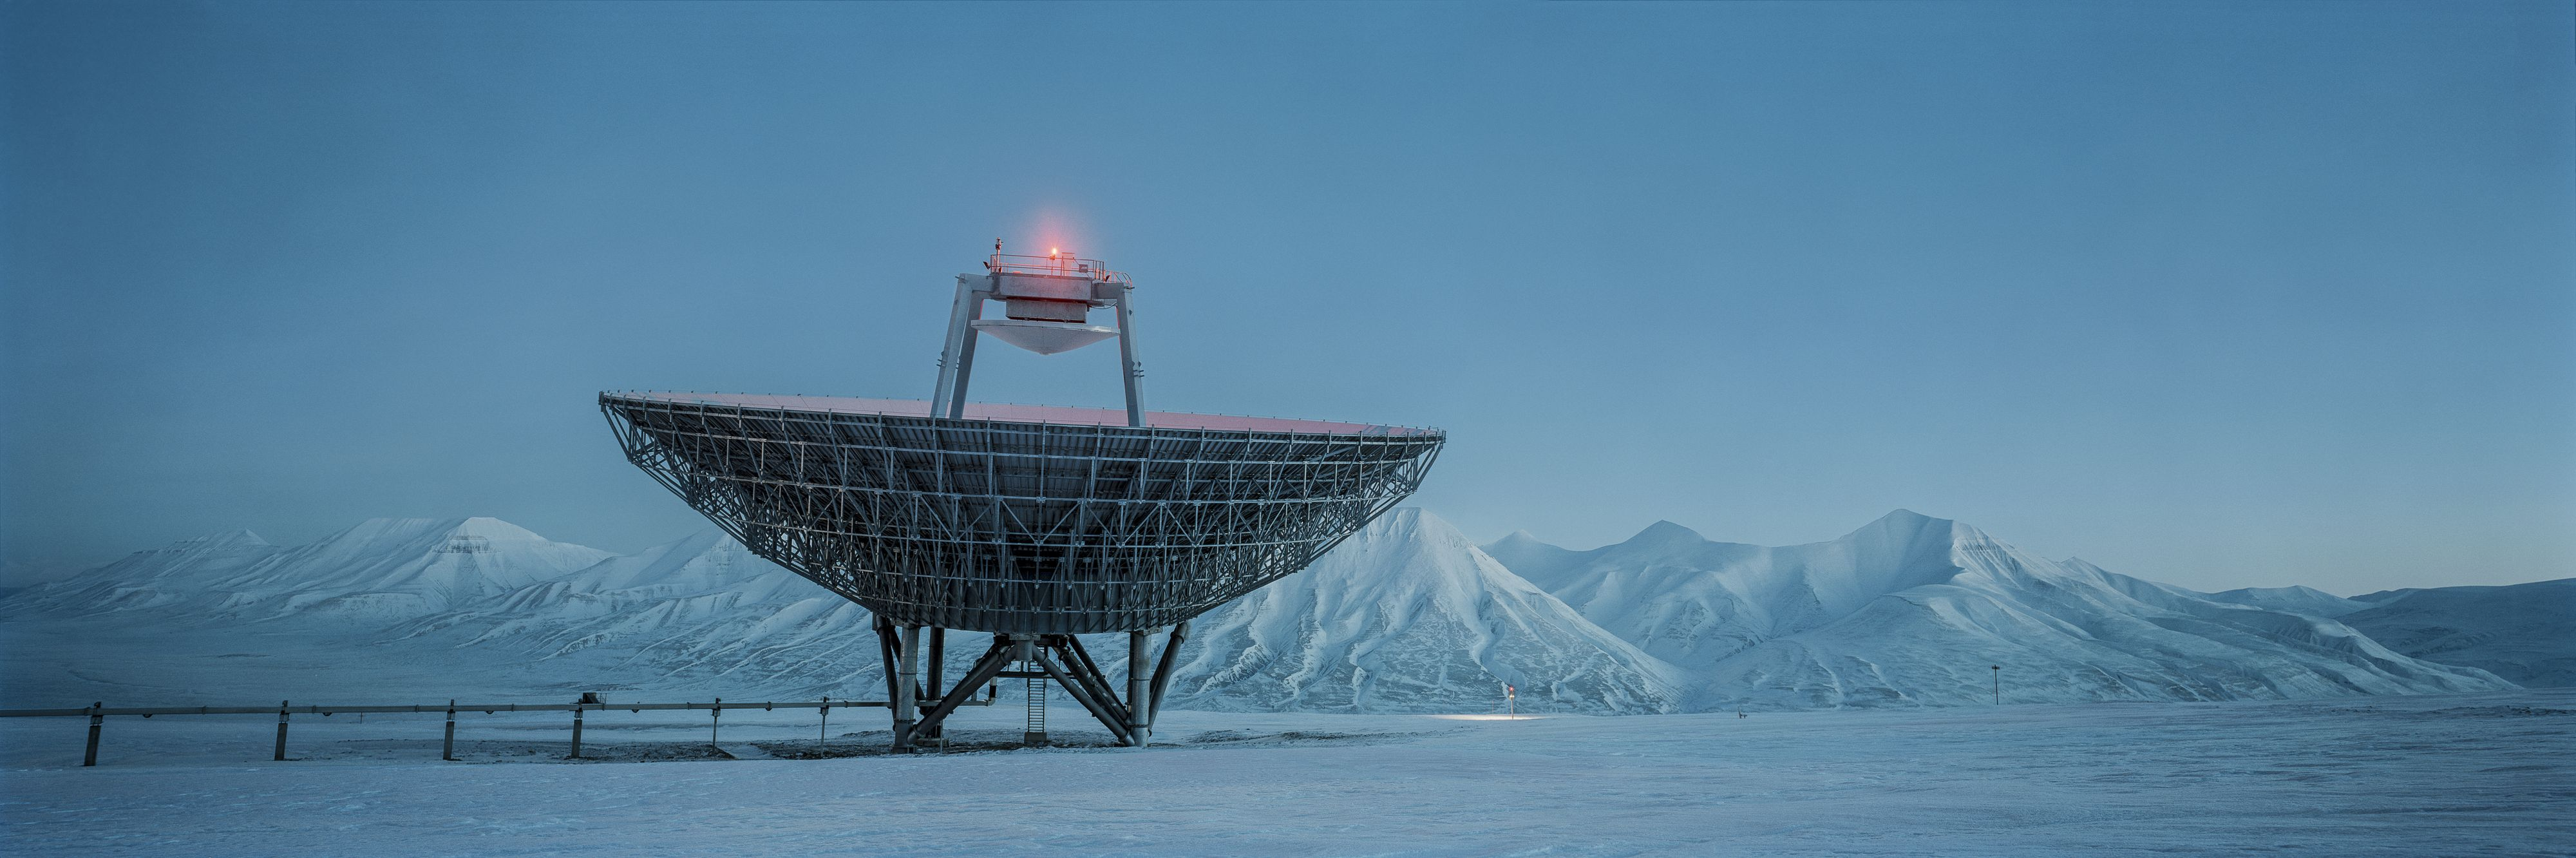 Winternight, Arctic Technology, Spitsbergen,Christian Houge,Photographie contemporaine